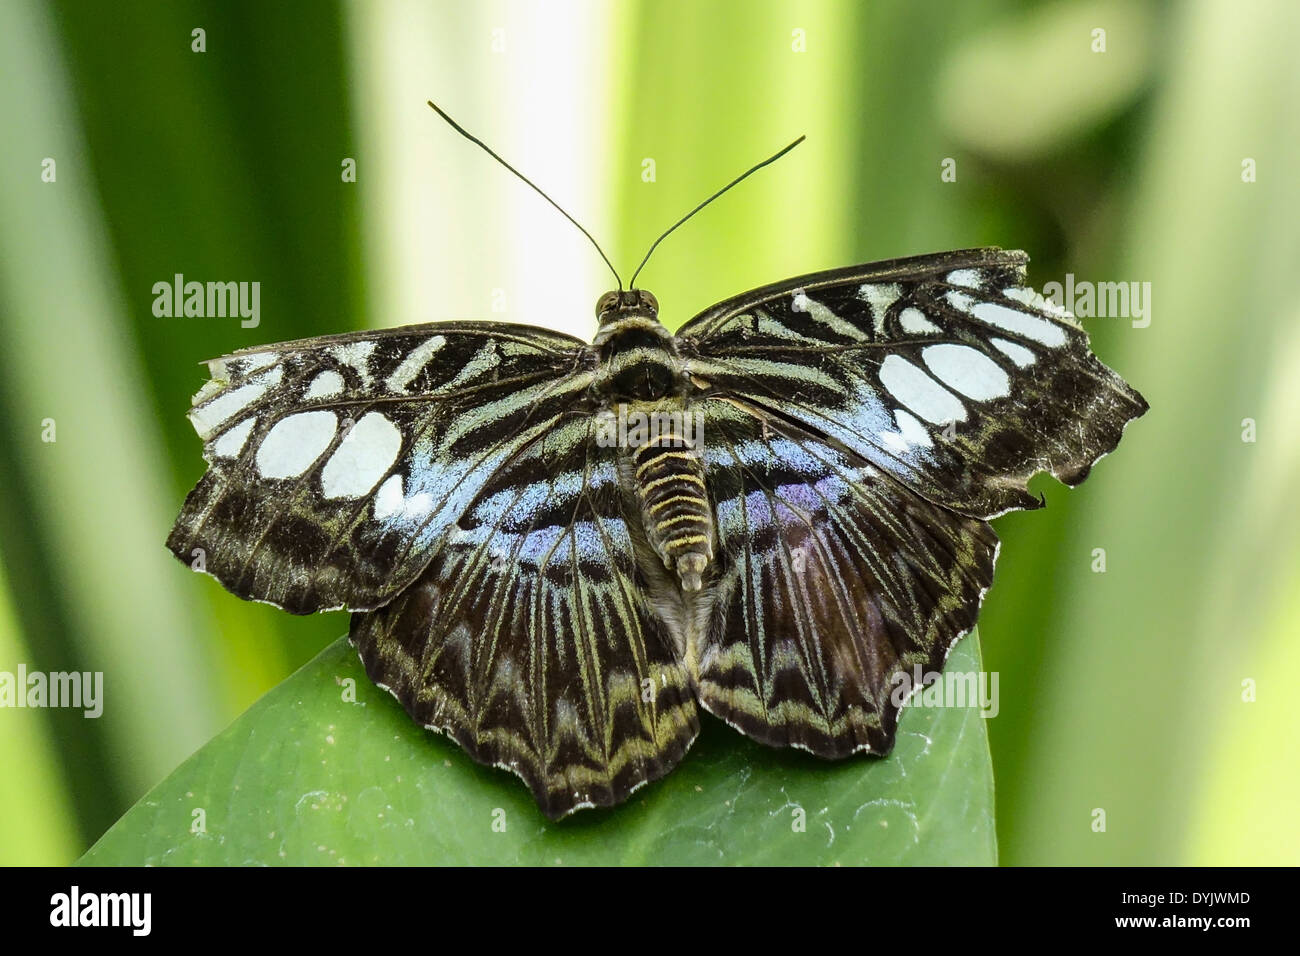 tropischer schmetterling blauer klipper parthenos sylvia lilacinus stockfoto bild 68642125. Black Bedroom Furniture Sets. Home Design Ideas